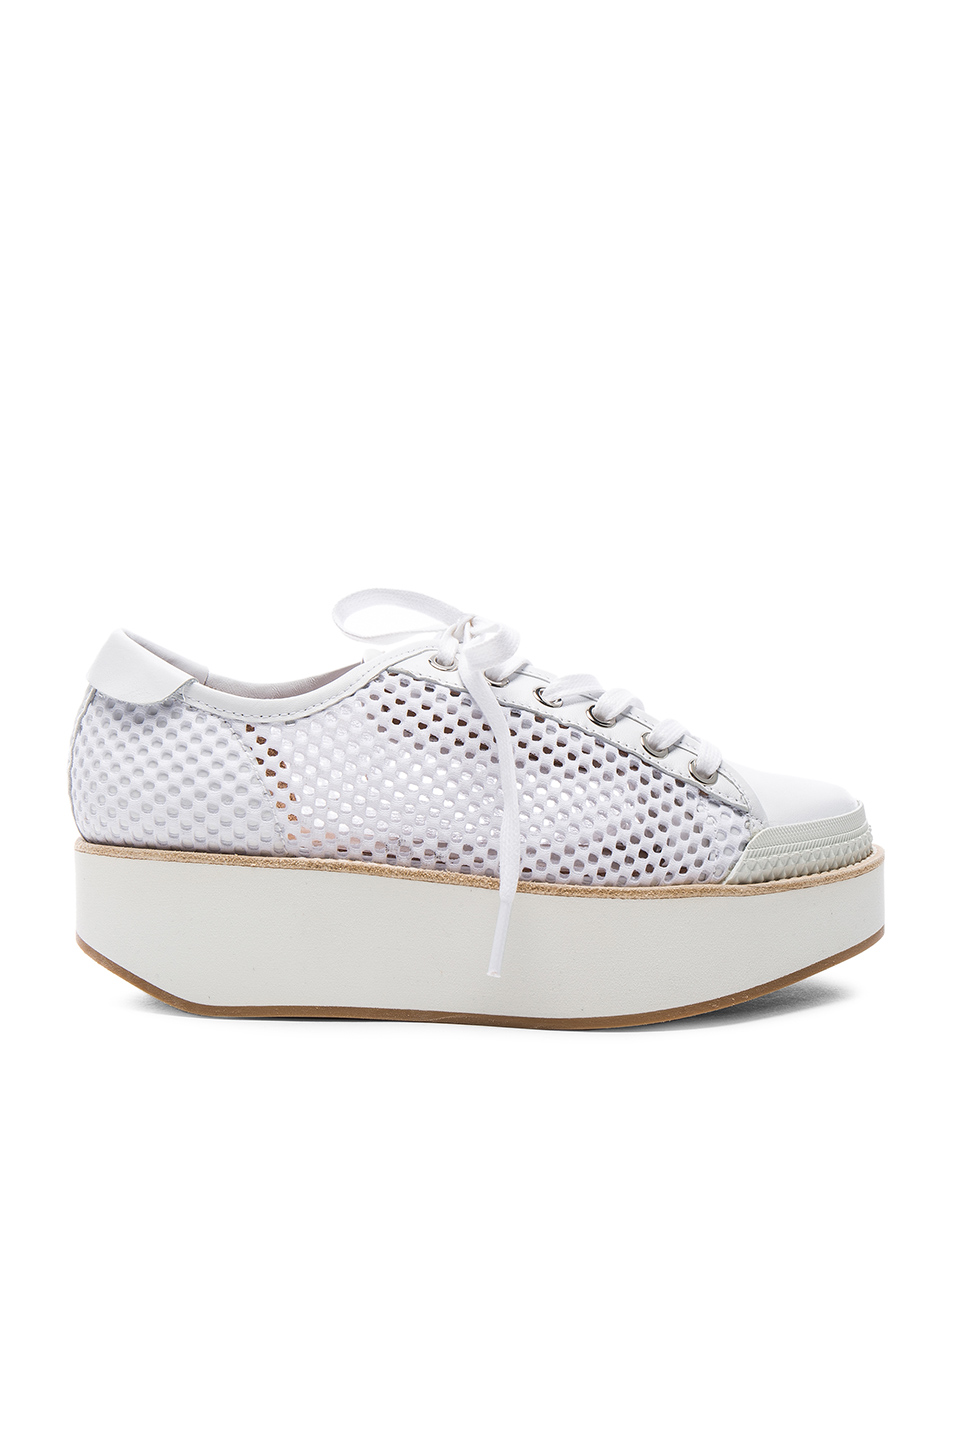 Flamingos Mesh Tatum Sneakers in White